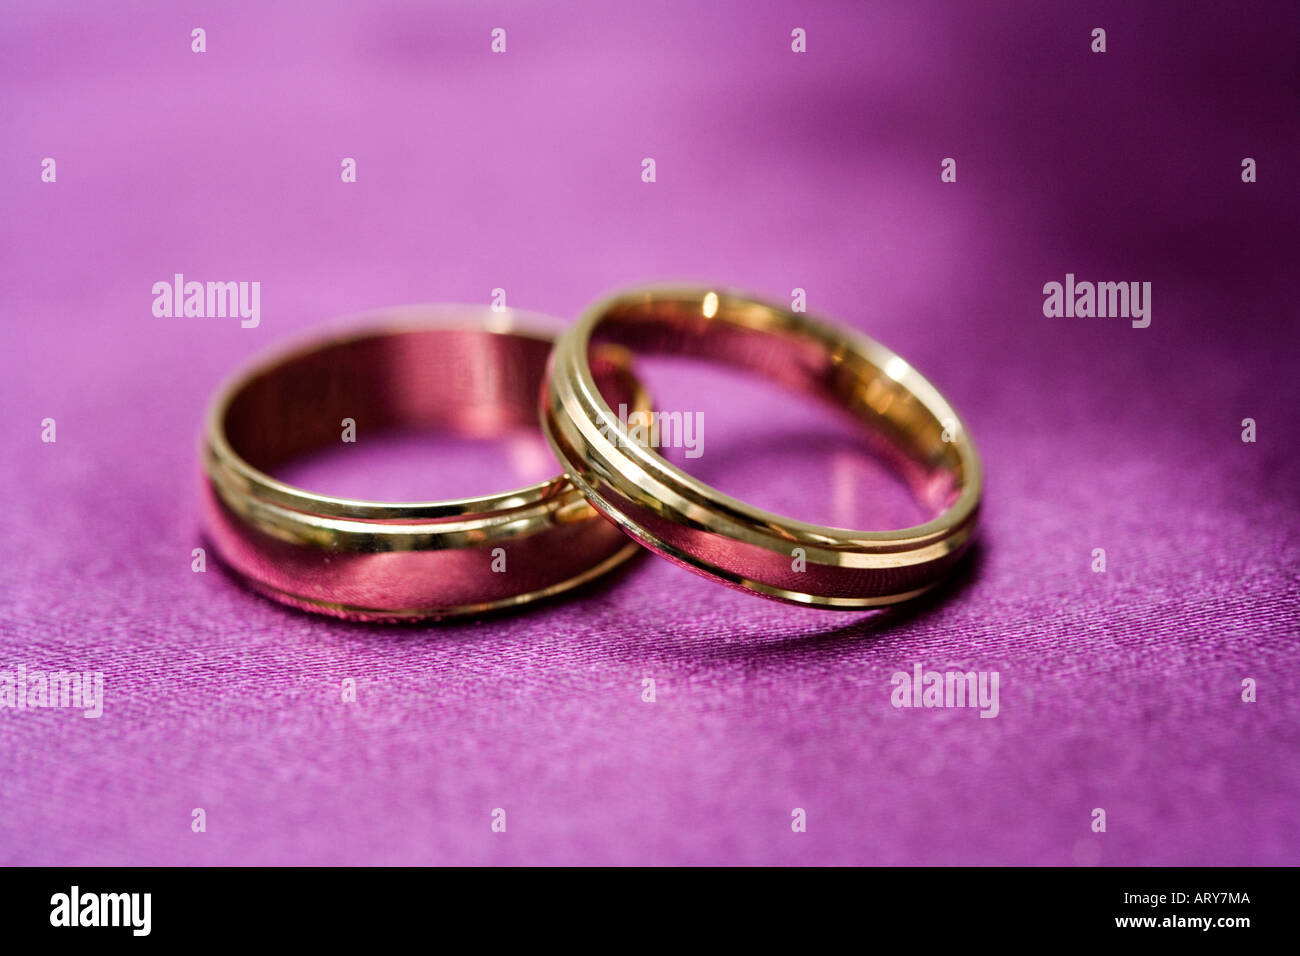 His and Her Wedding rings resting on purple cloth Stock Photo ...